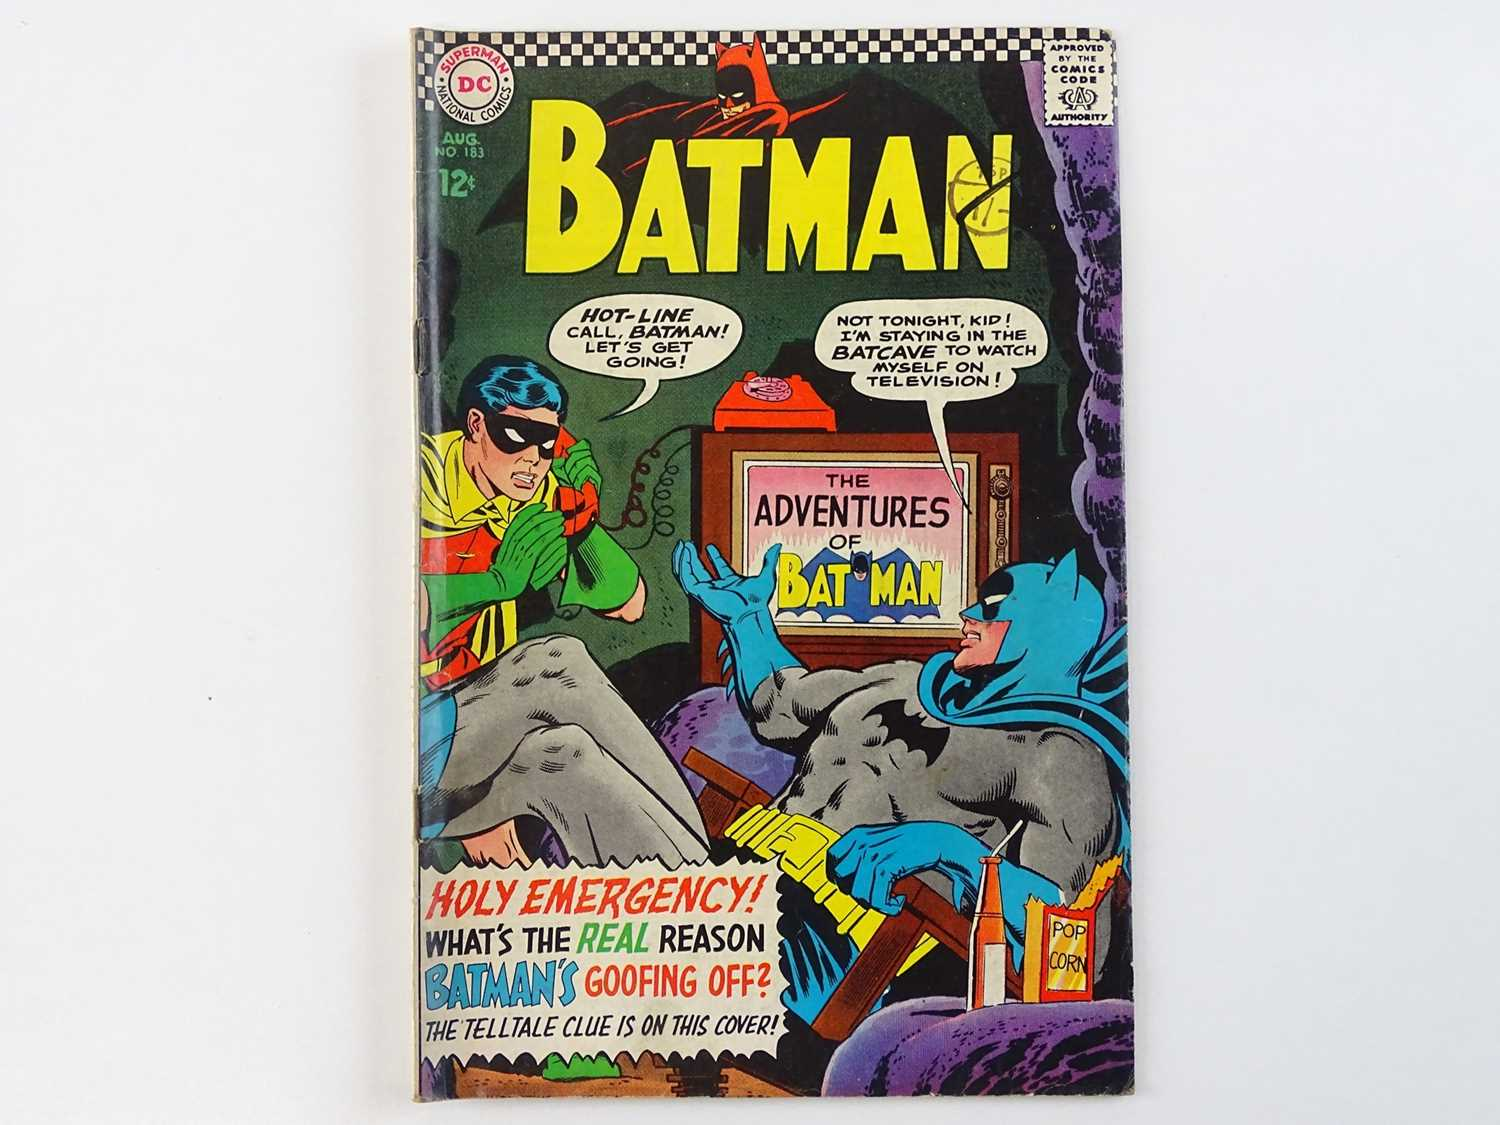 BATMAN #183 - (1966 - DC - Uk Cover Price) - Second appearance of Poison Ivy - Carmine Infantino &